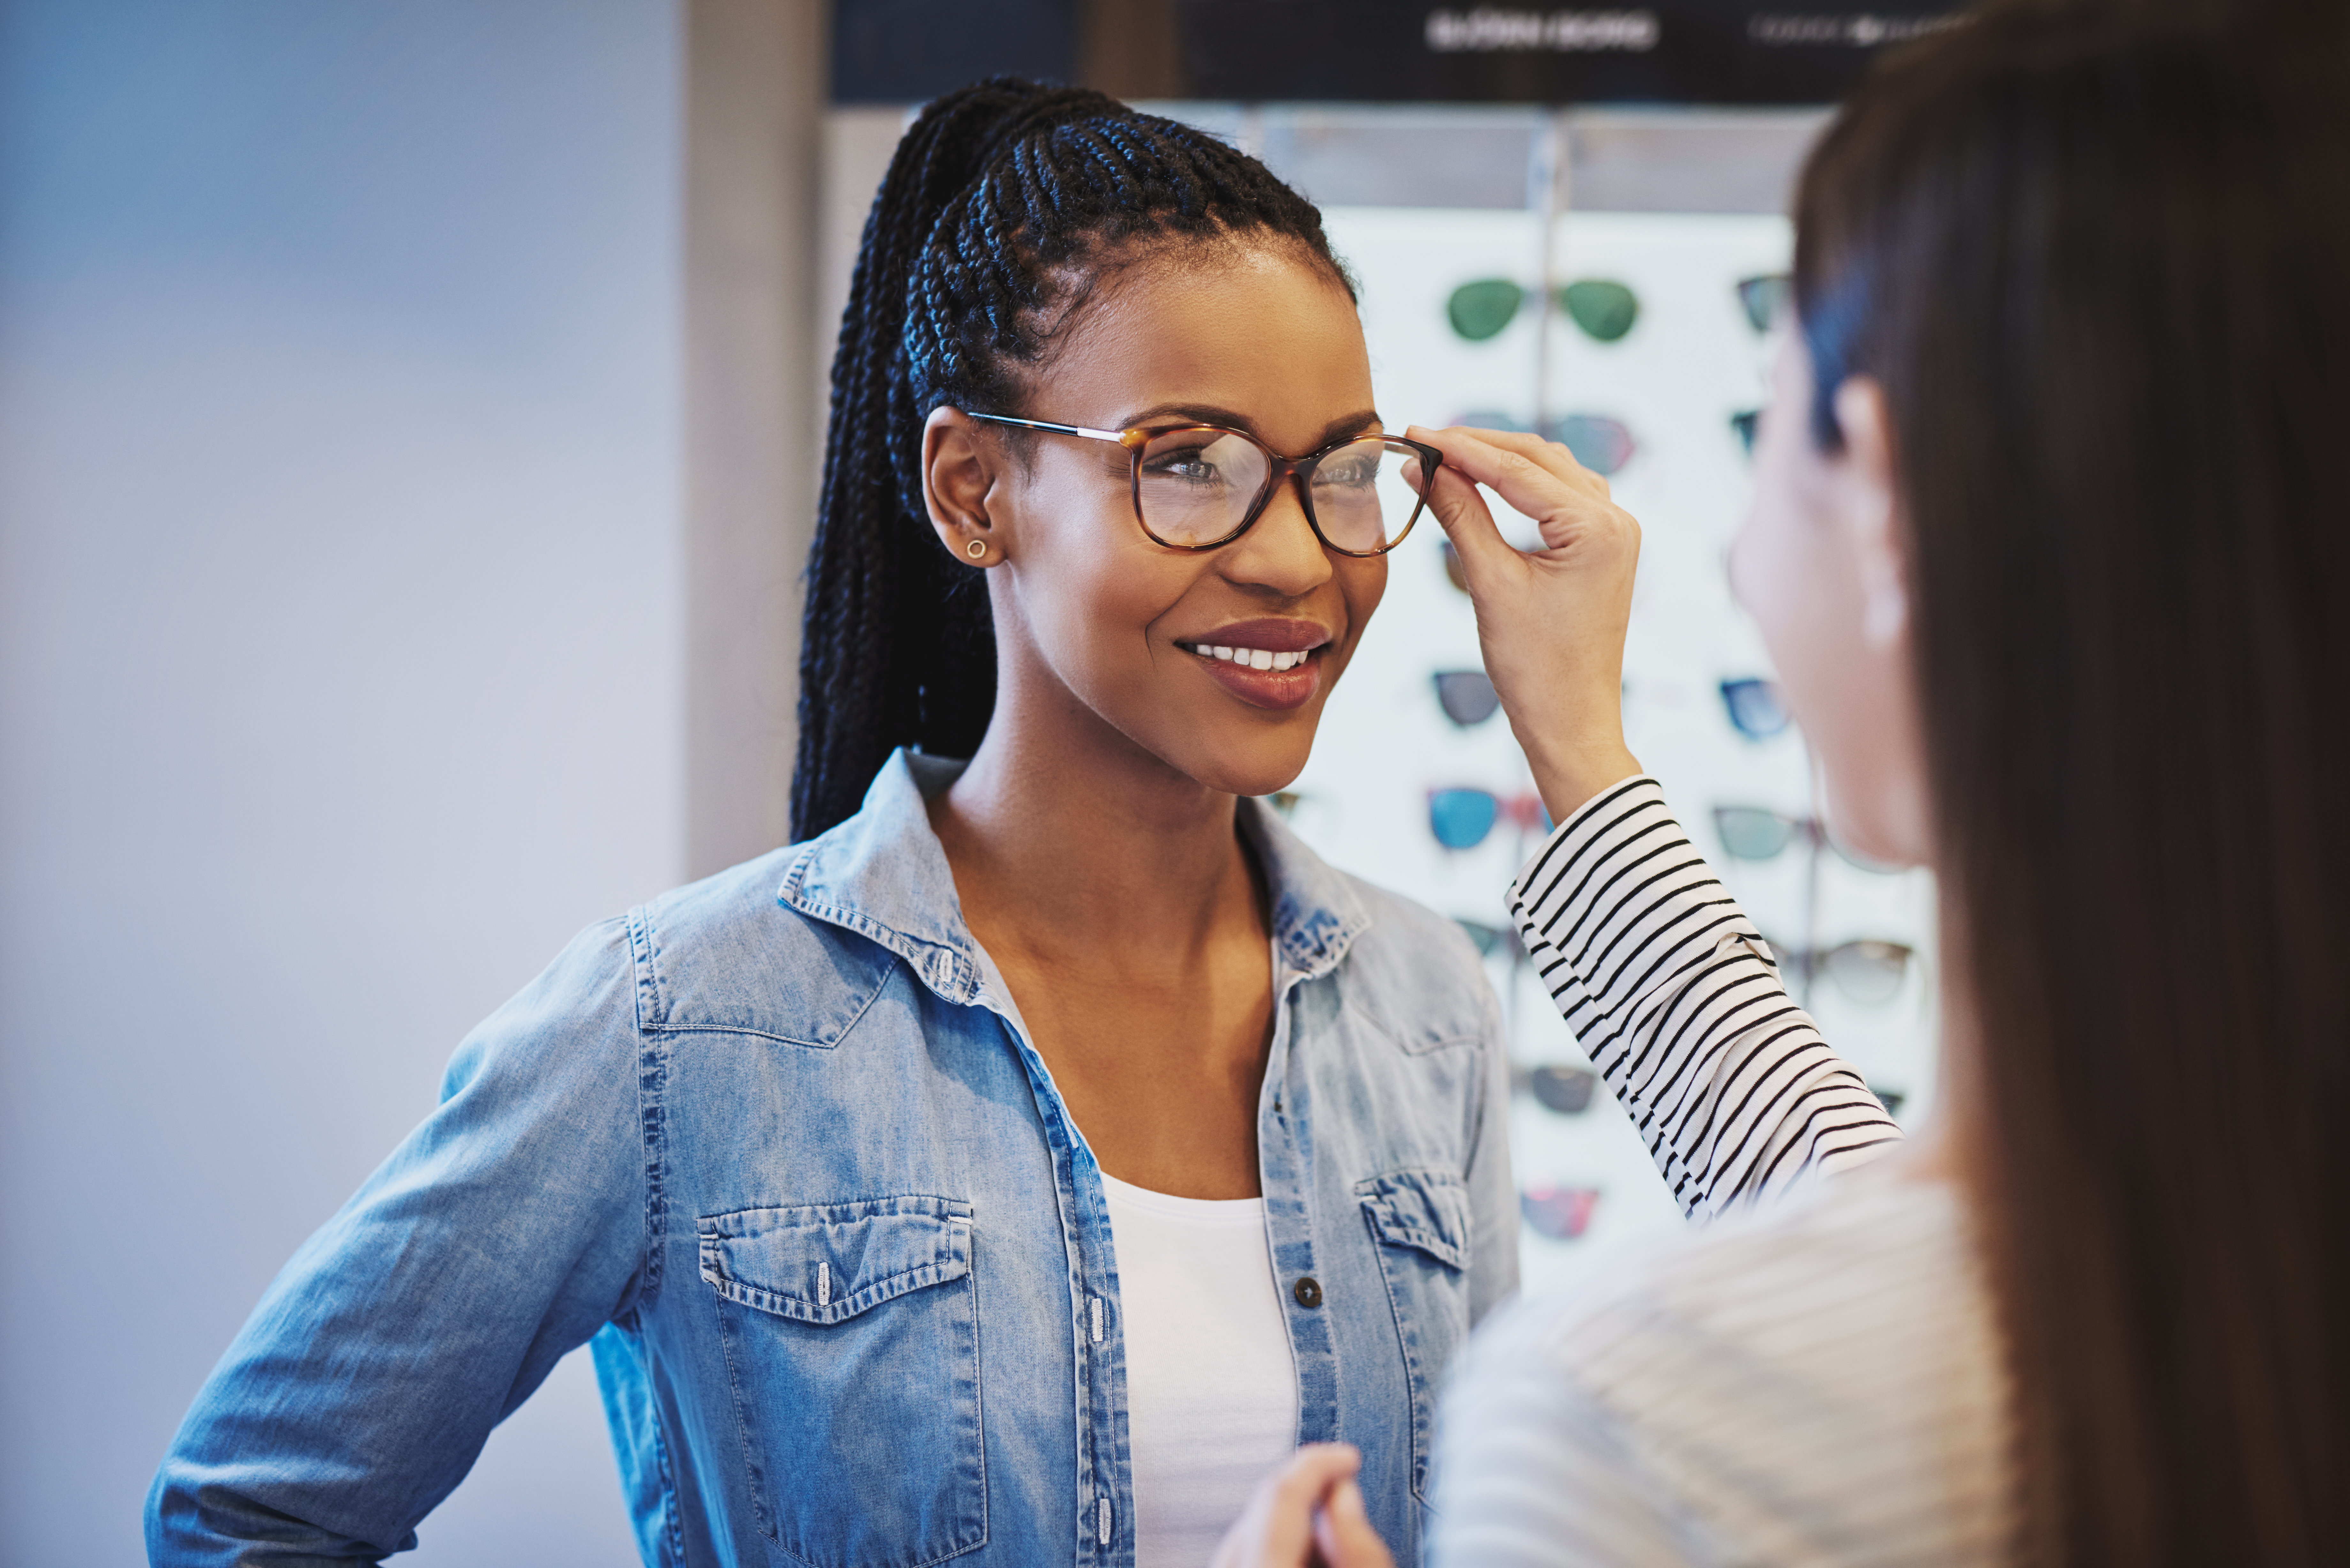 optometrist fitting glasses on a customer PX29ANE - Blog